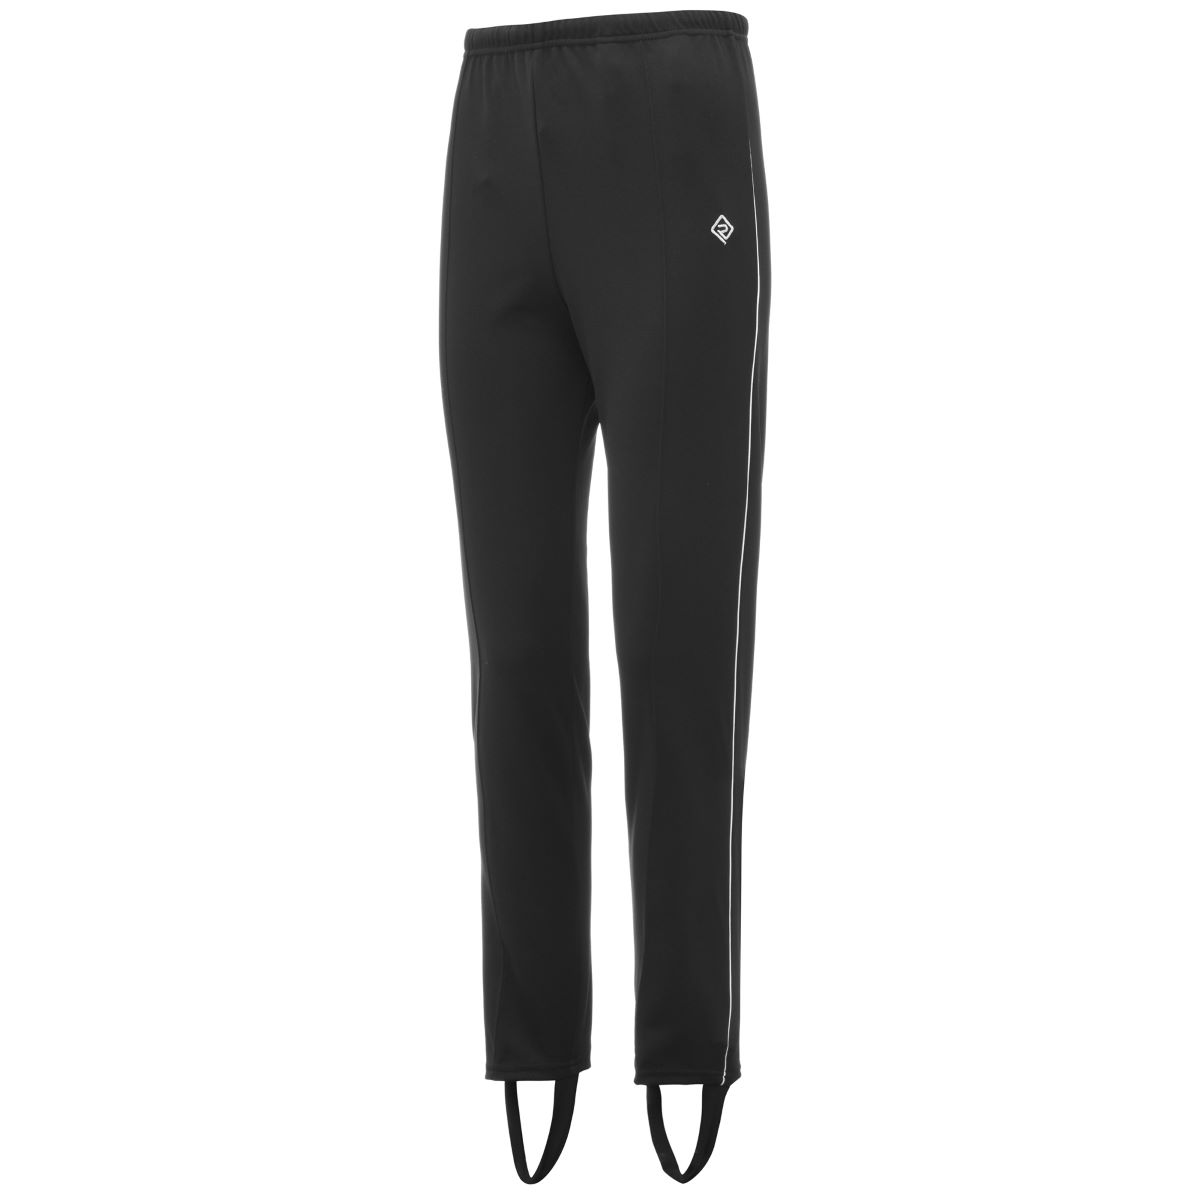 Image of Collant Femme Ronhill Classic Tracksters - 12 UK Noir/Blanc | Joggings